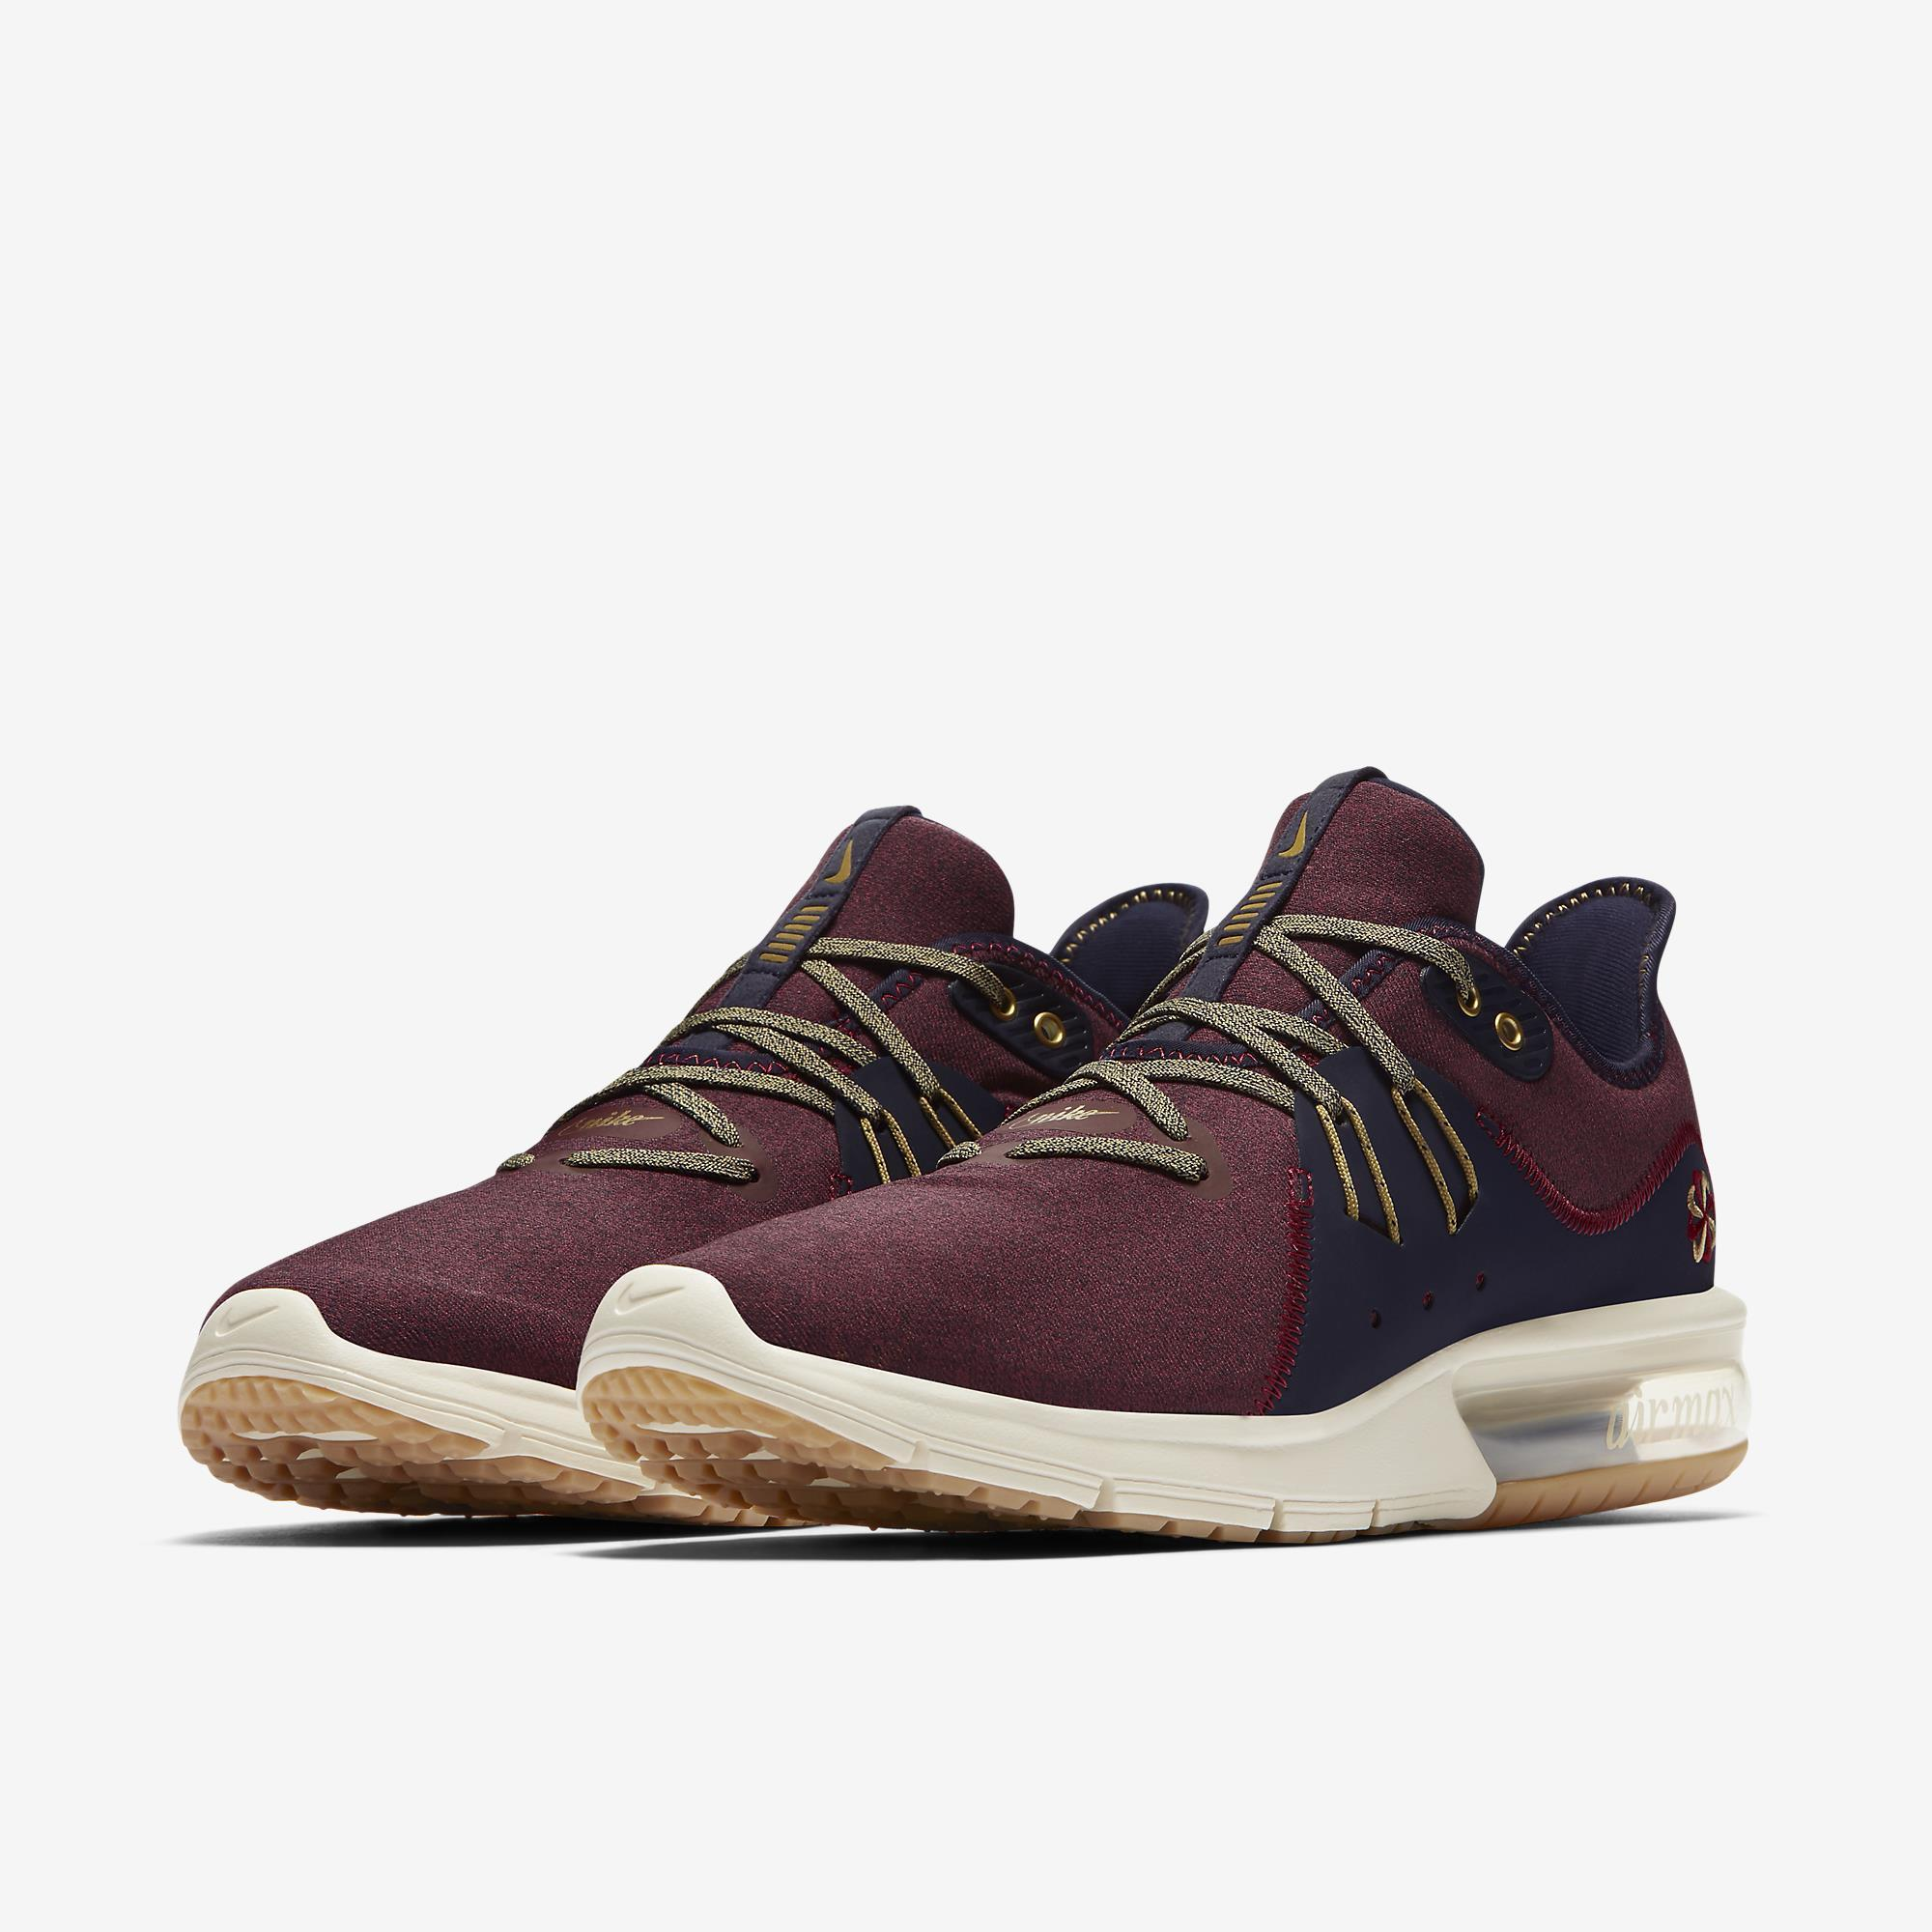 422c3d6ebe Nike Air Max Sequent 3 Premium VST Running Shoes men's - AR0253-600: Buy  Online at Best Prices in Nepal   Daraz.com.np